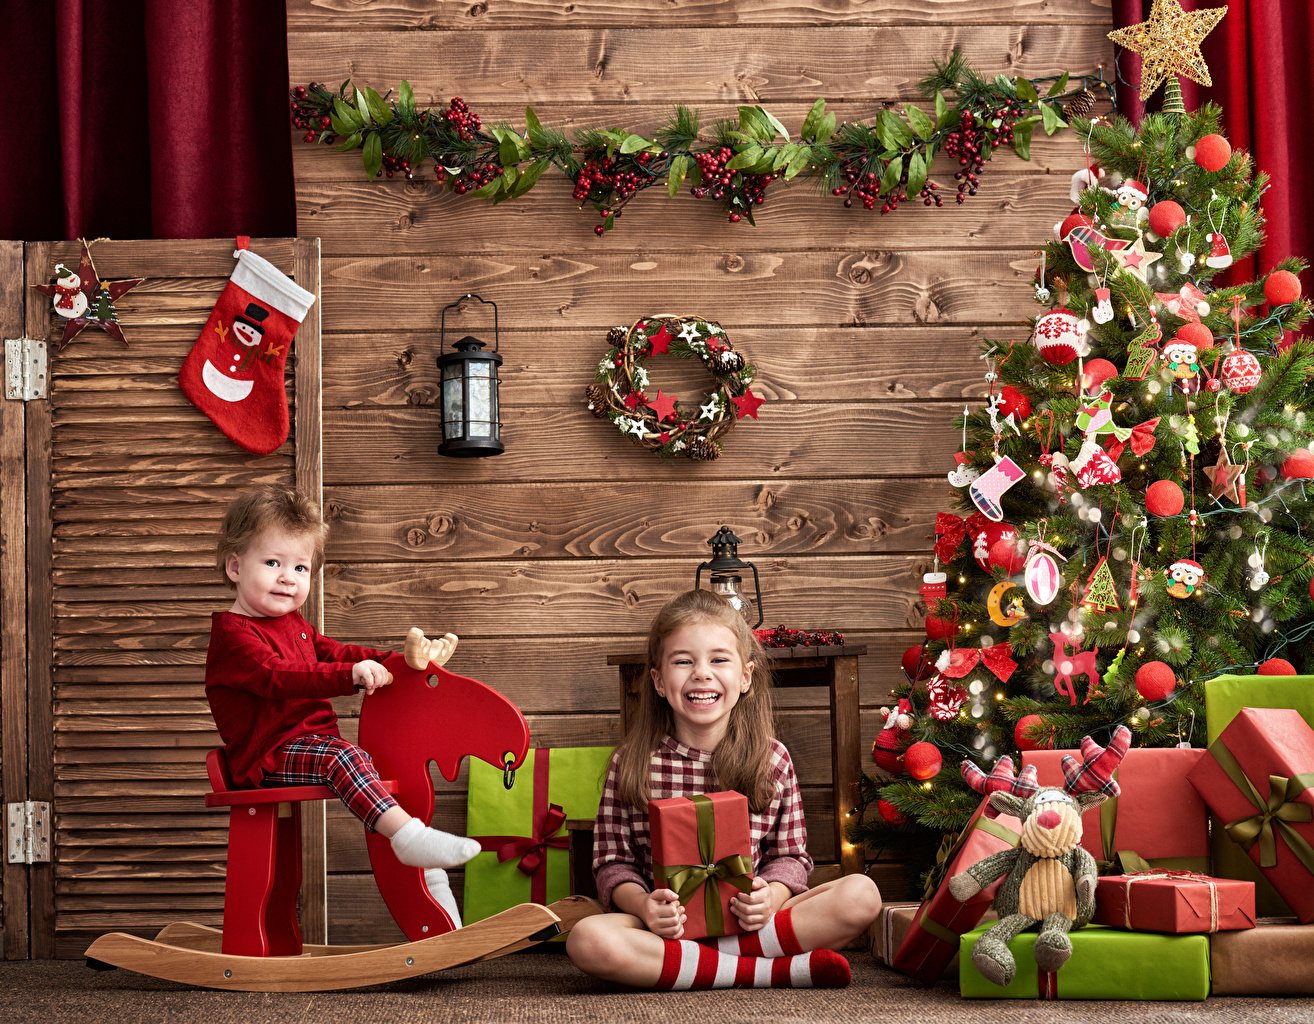 Pictures Little girls New year Lantern Smile Children Two New Year tree present Holidays Christmas child 2 Christmas tree Gifts